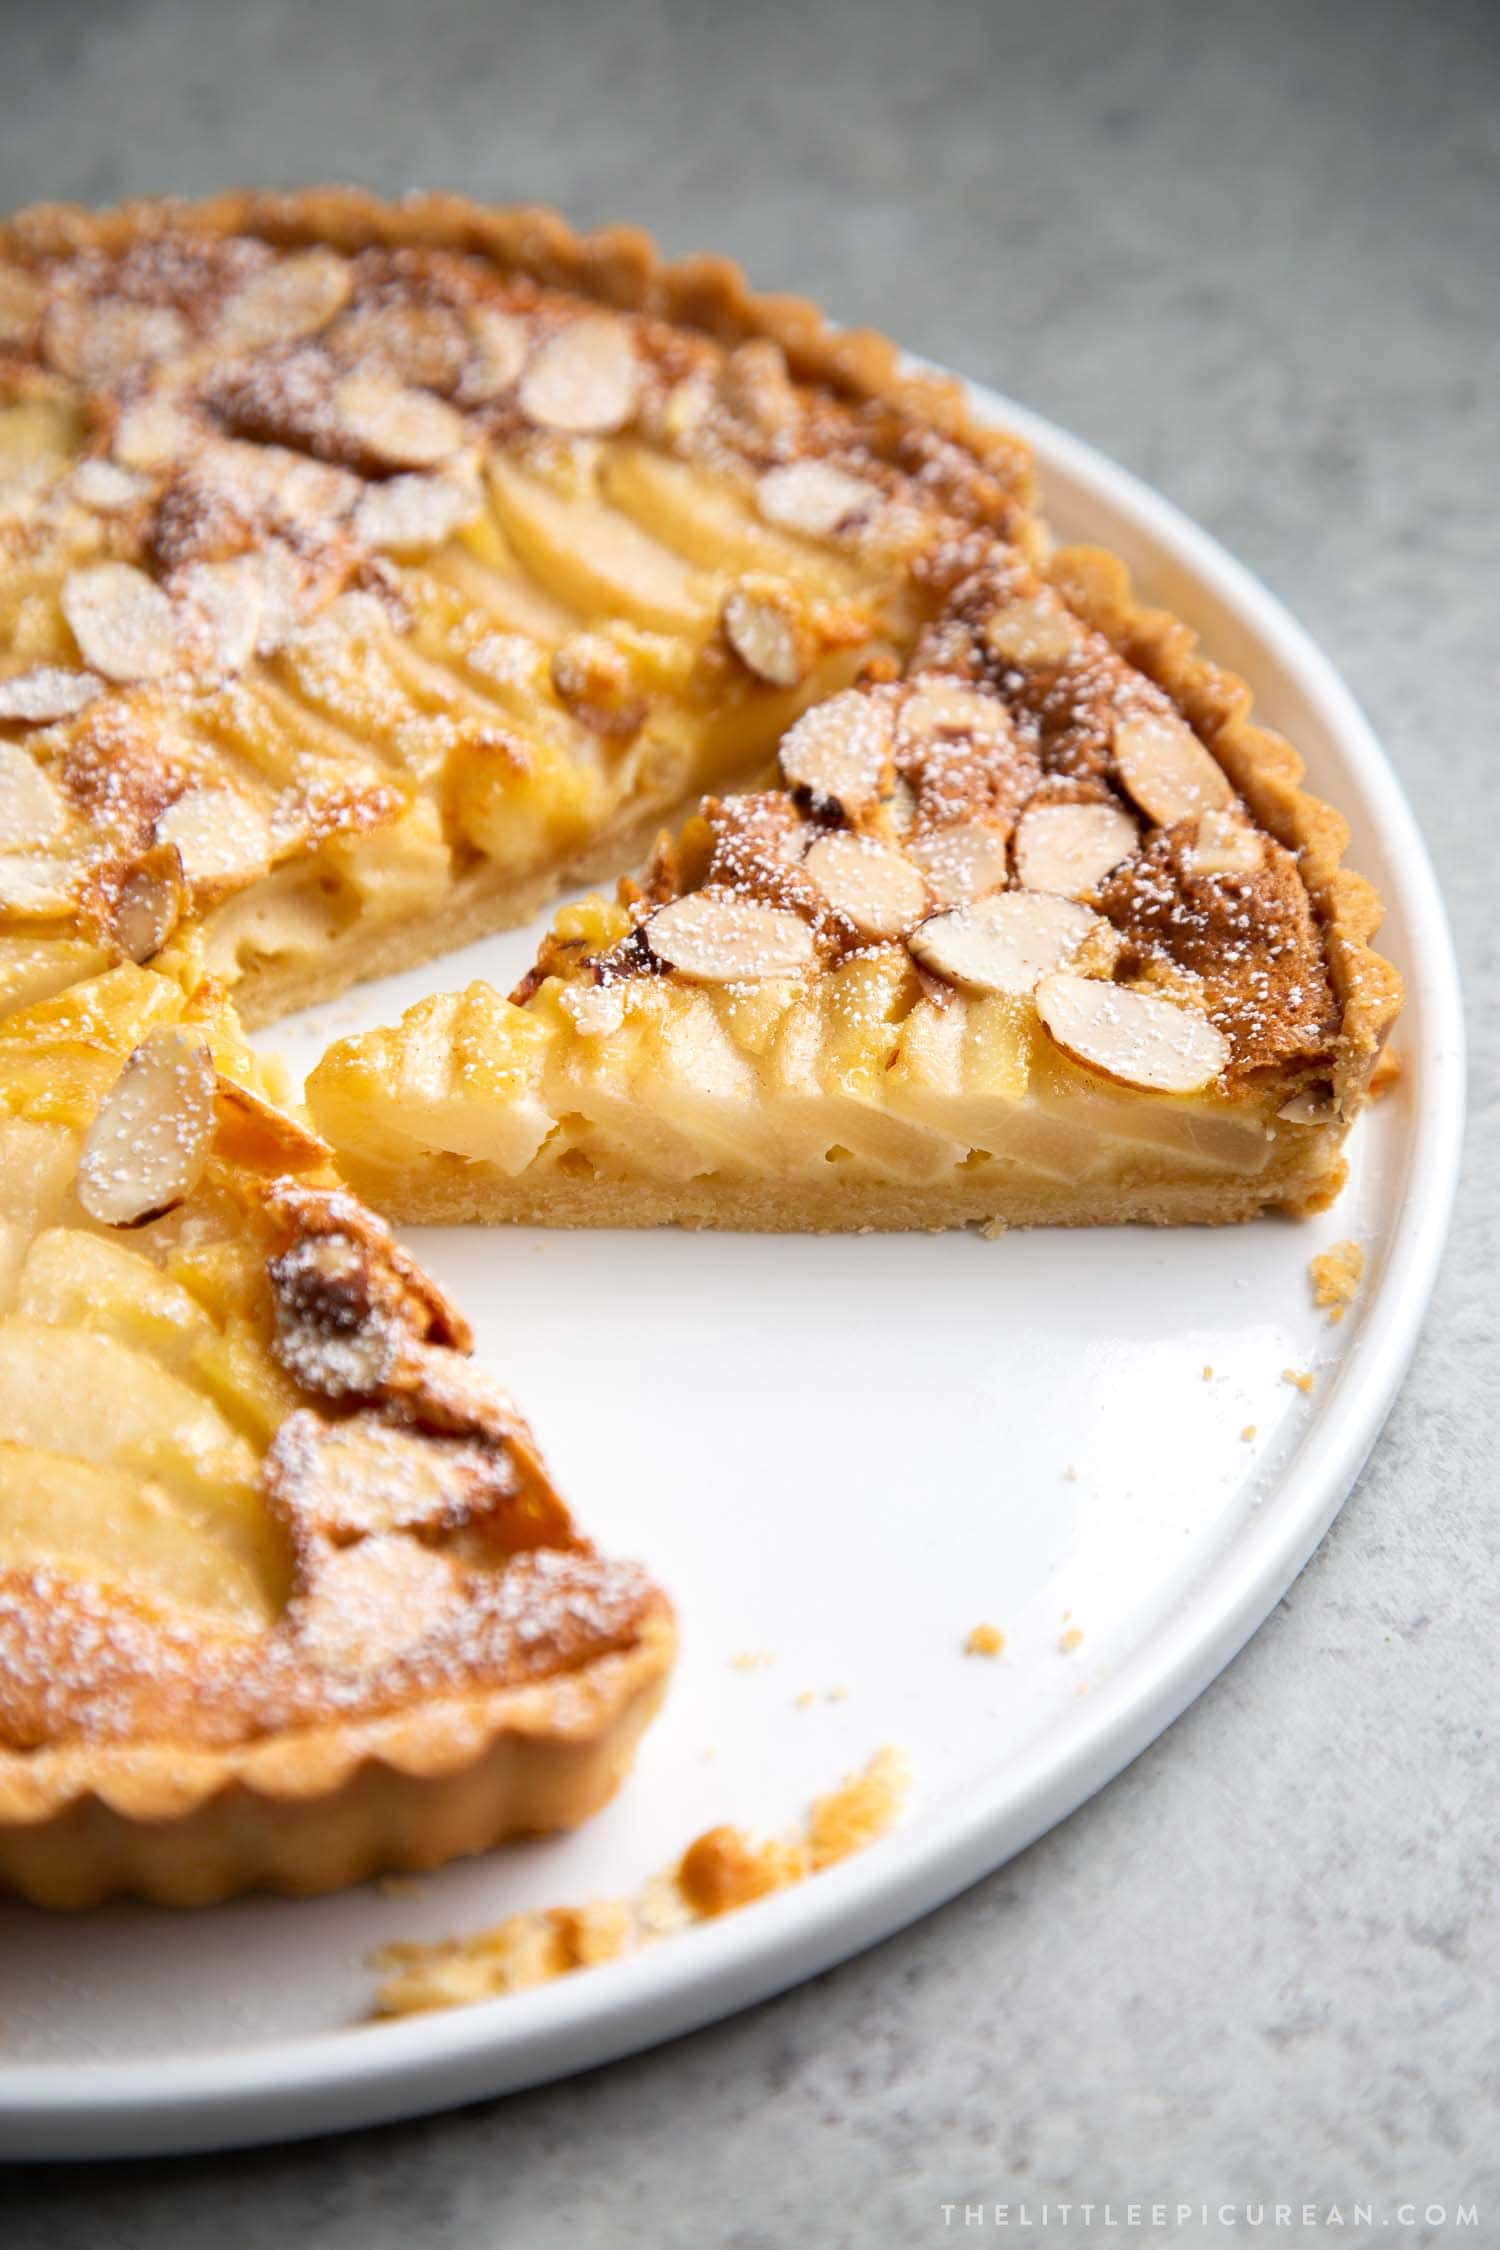 Pear Frangipane Tart Slice. Buttery shortbread crust baked with almond frangipane filling and pears.